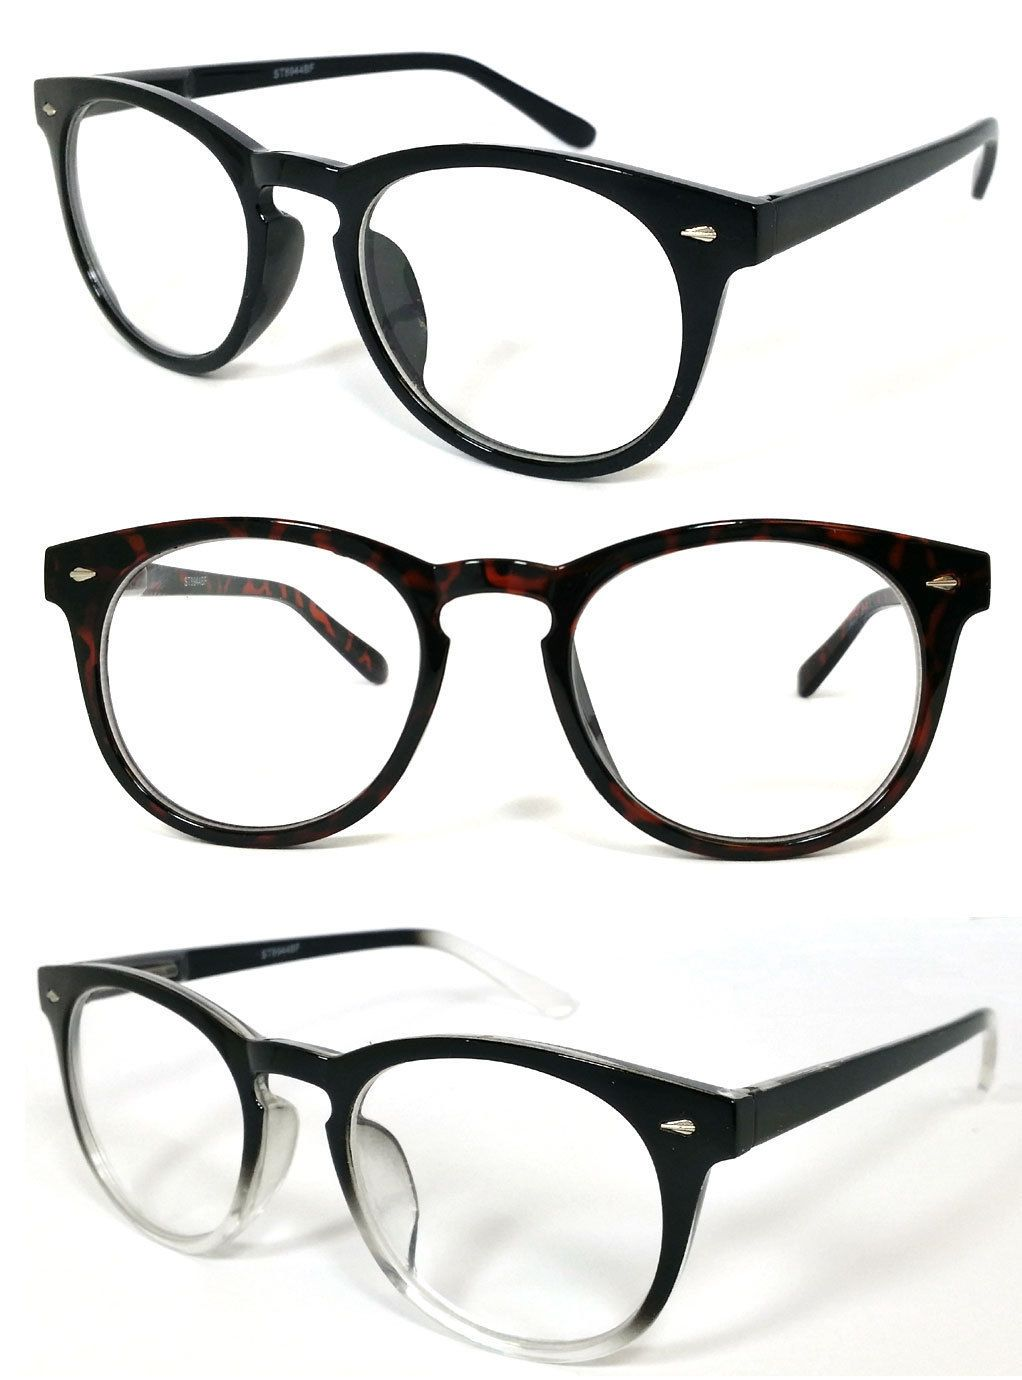 d04f8b59457b  9.49 - Round Clubmaster Clear Lens Blended Almost No Line Bifocal Reading  Glasses Re39  ebay  Fashion